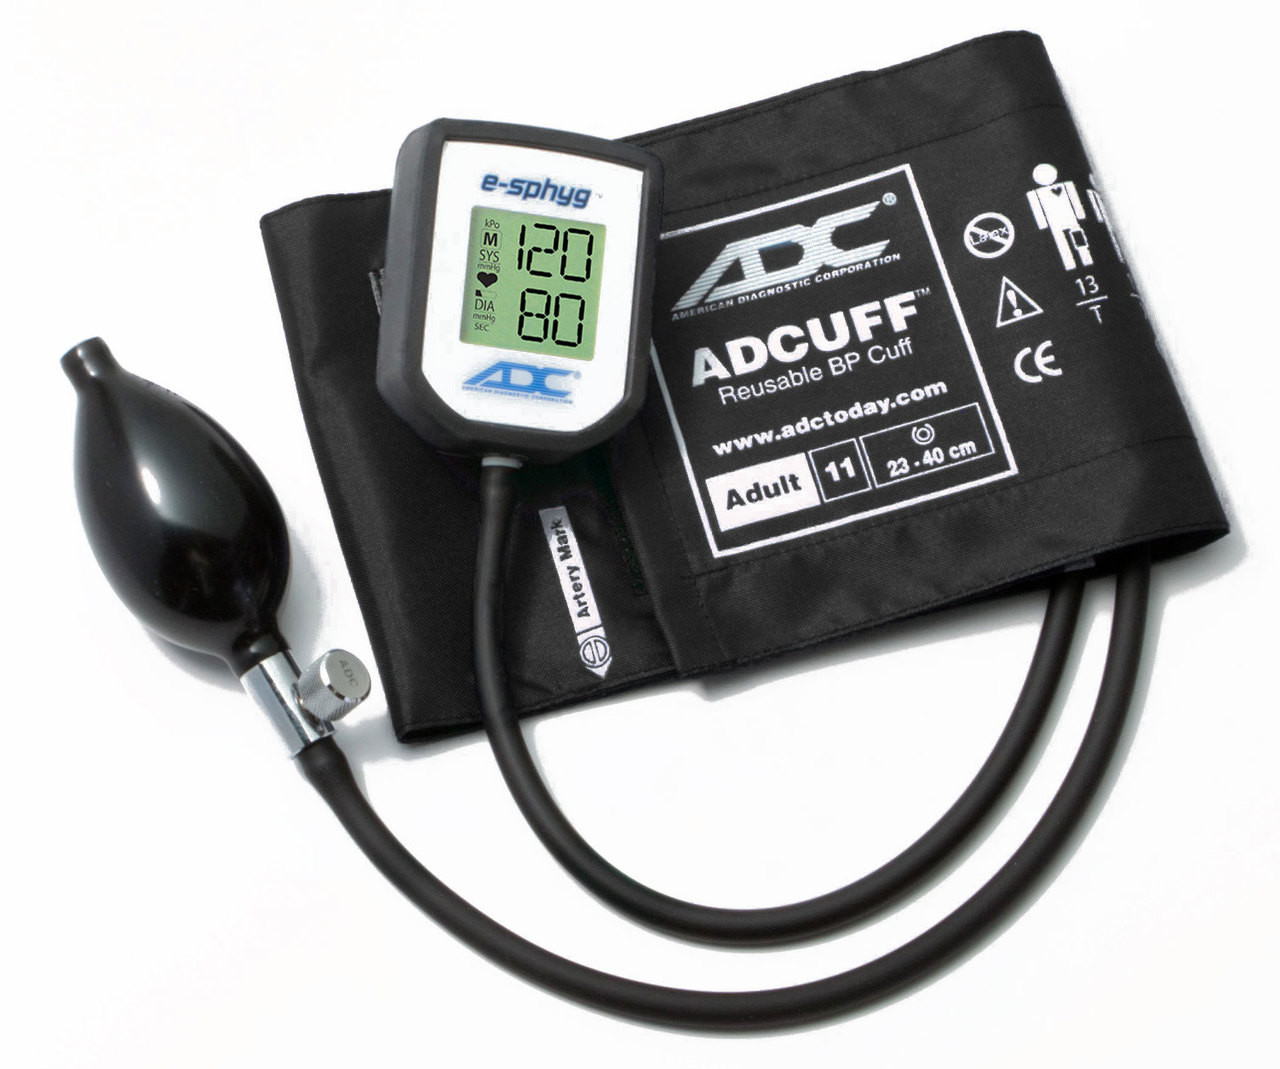 ADC 7002 e-sphyg Digital Aneroid